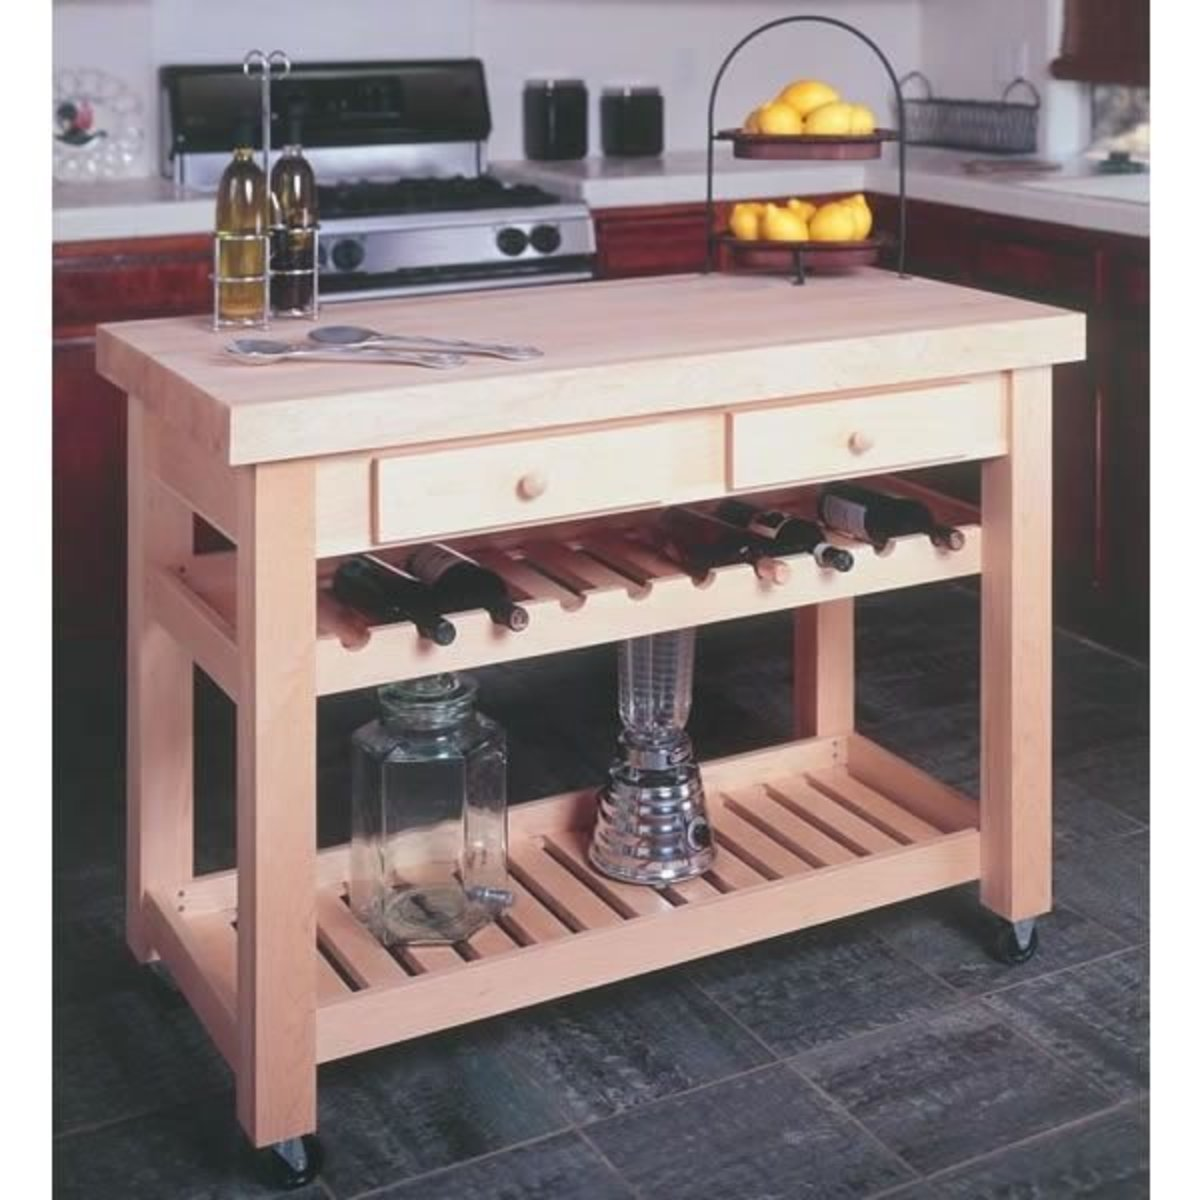 Woodworking Project Paper Plan For Kitchen Island, No. 932